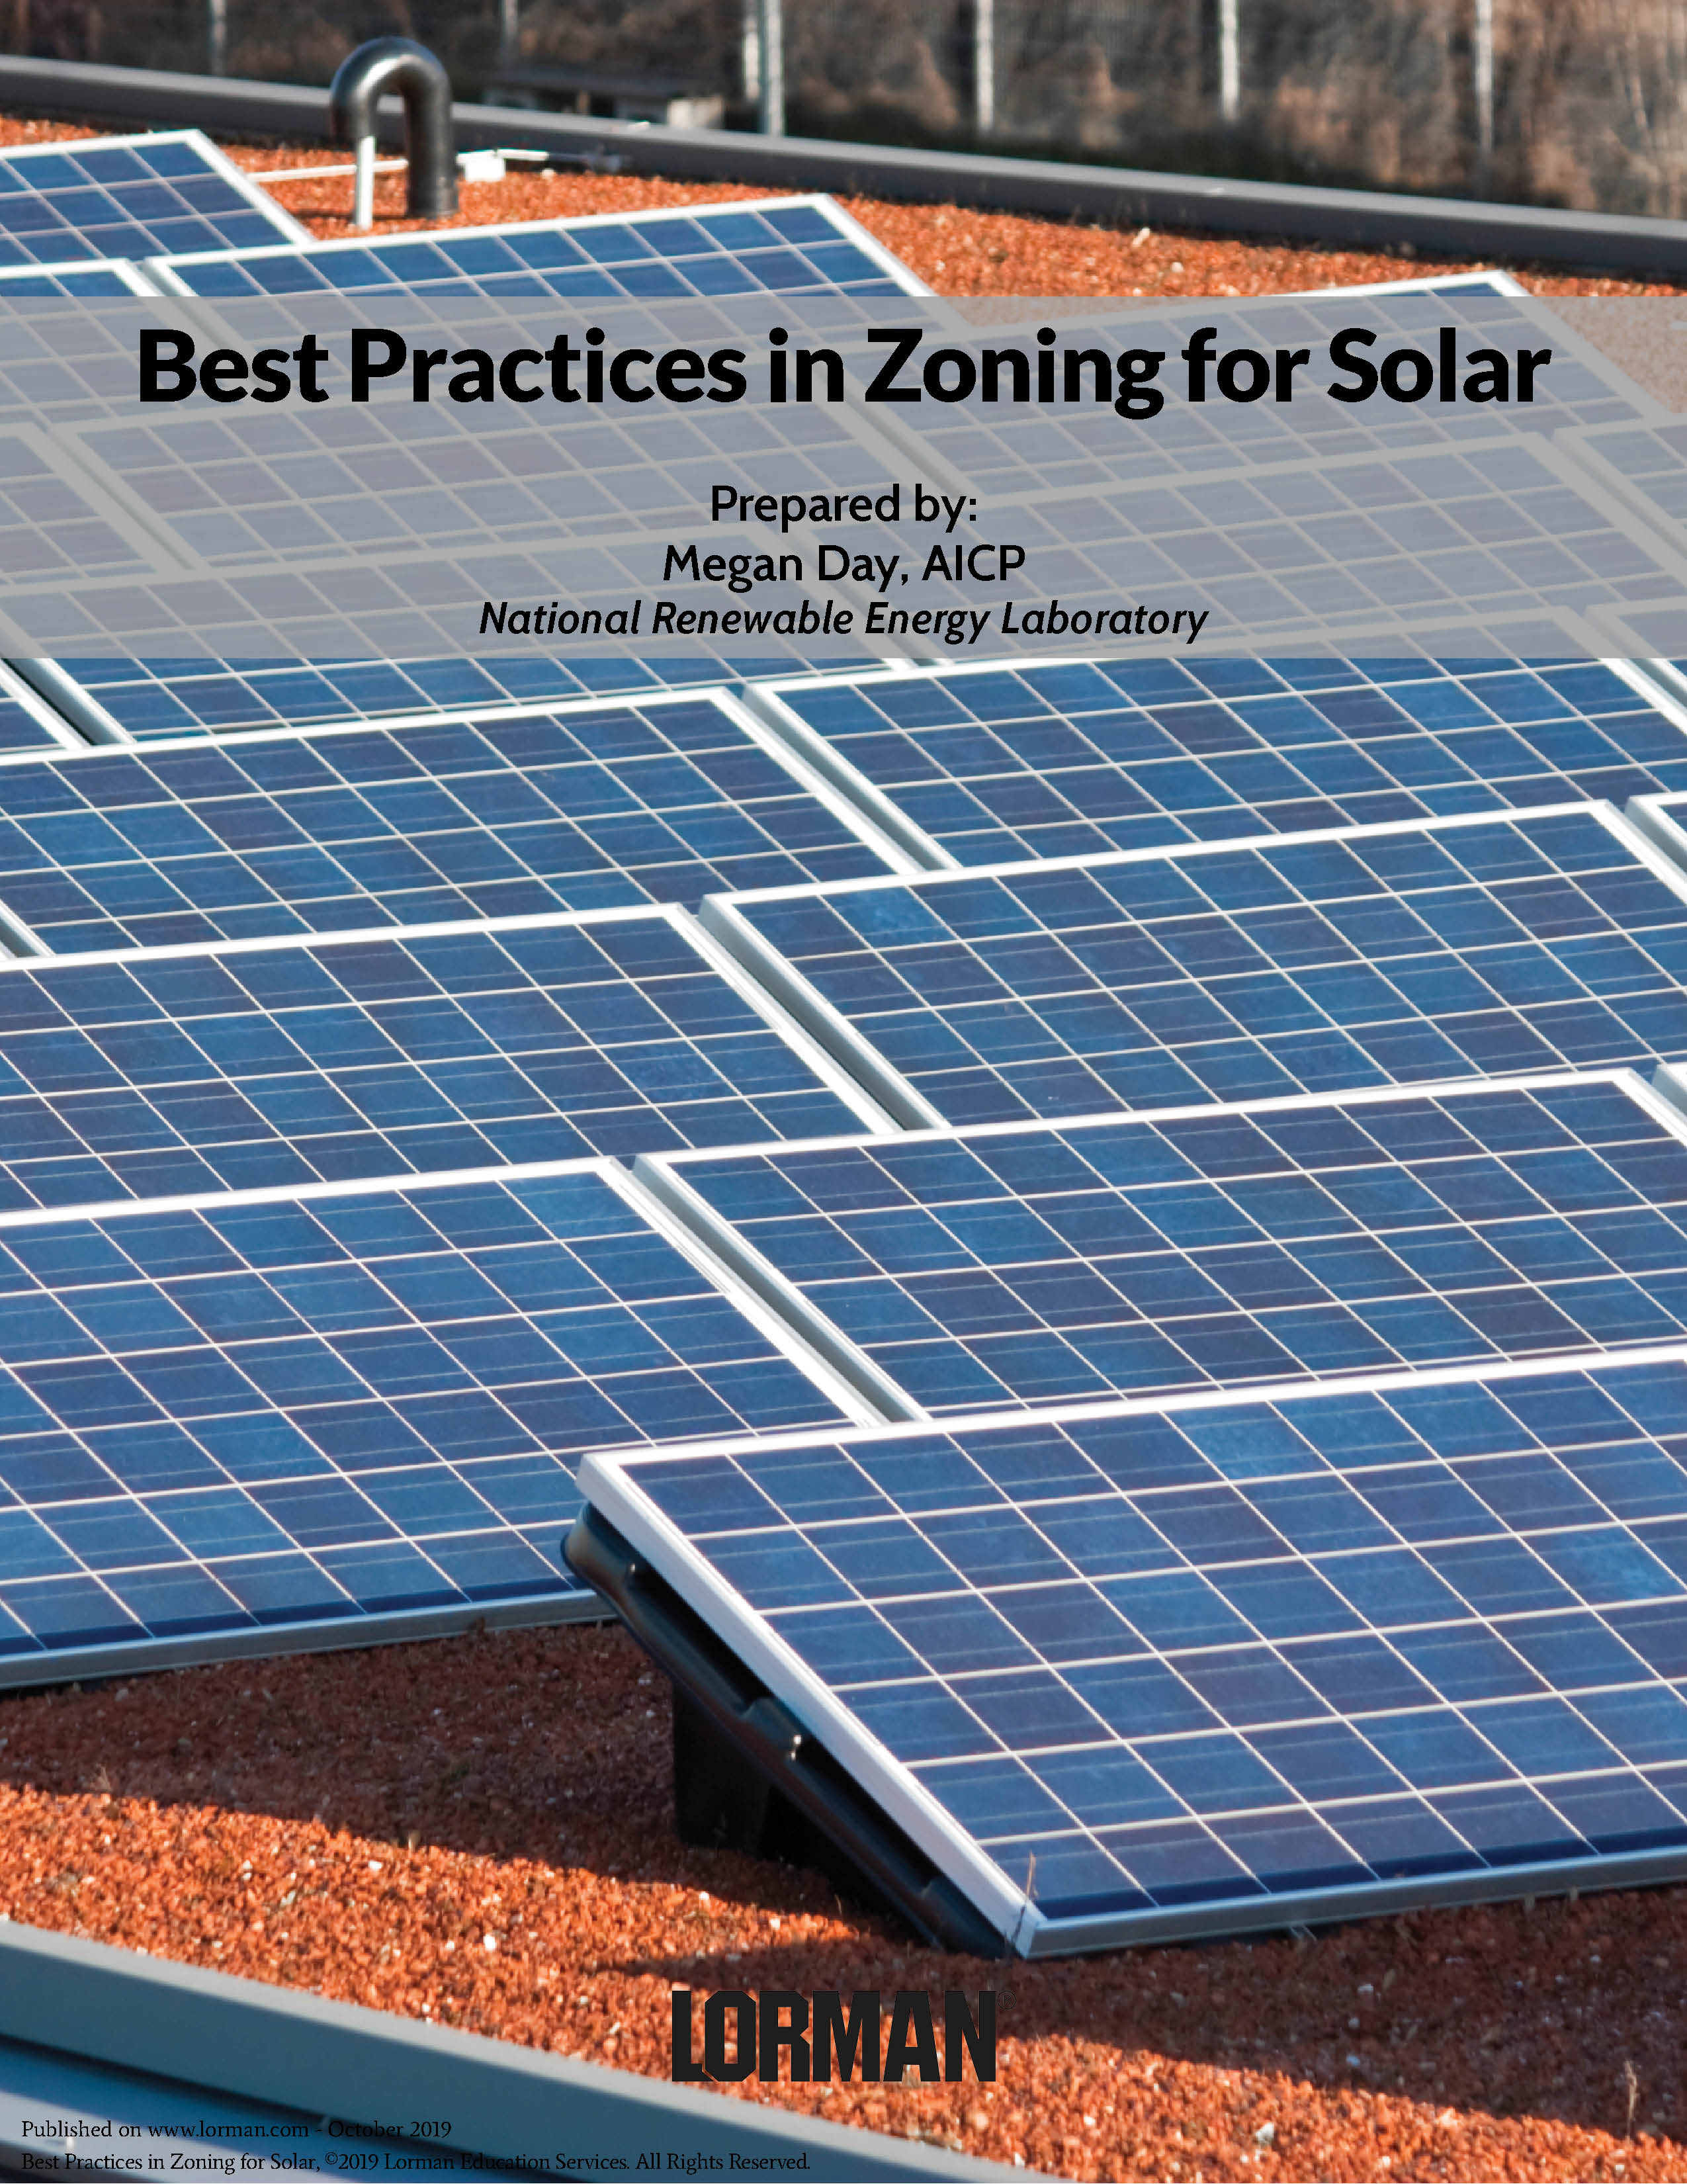 Best Practices in Zoning for Solar